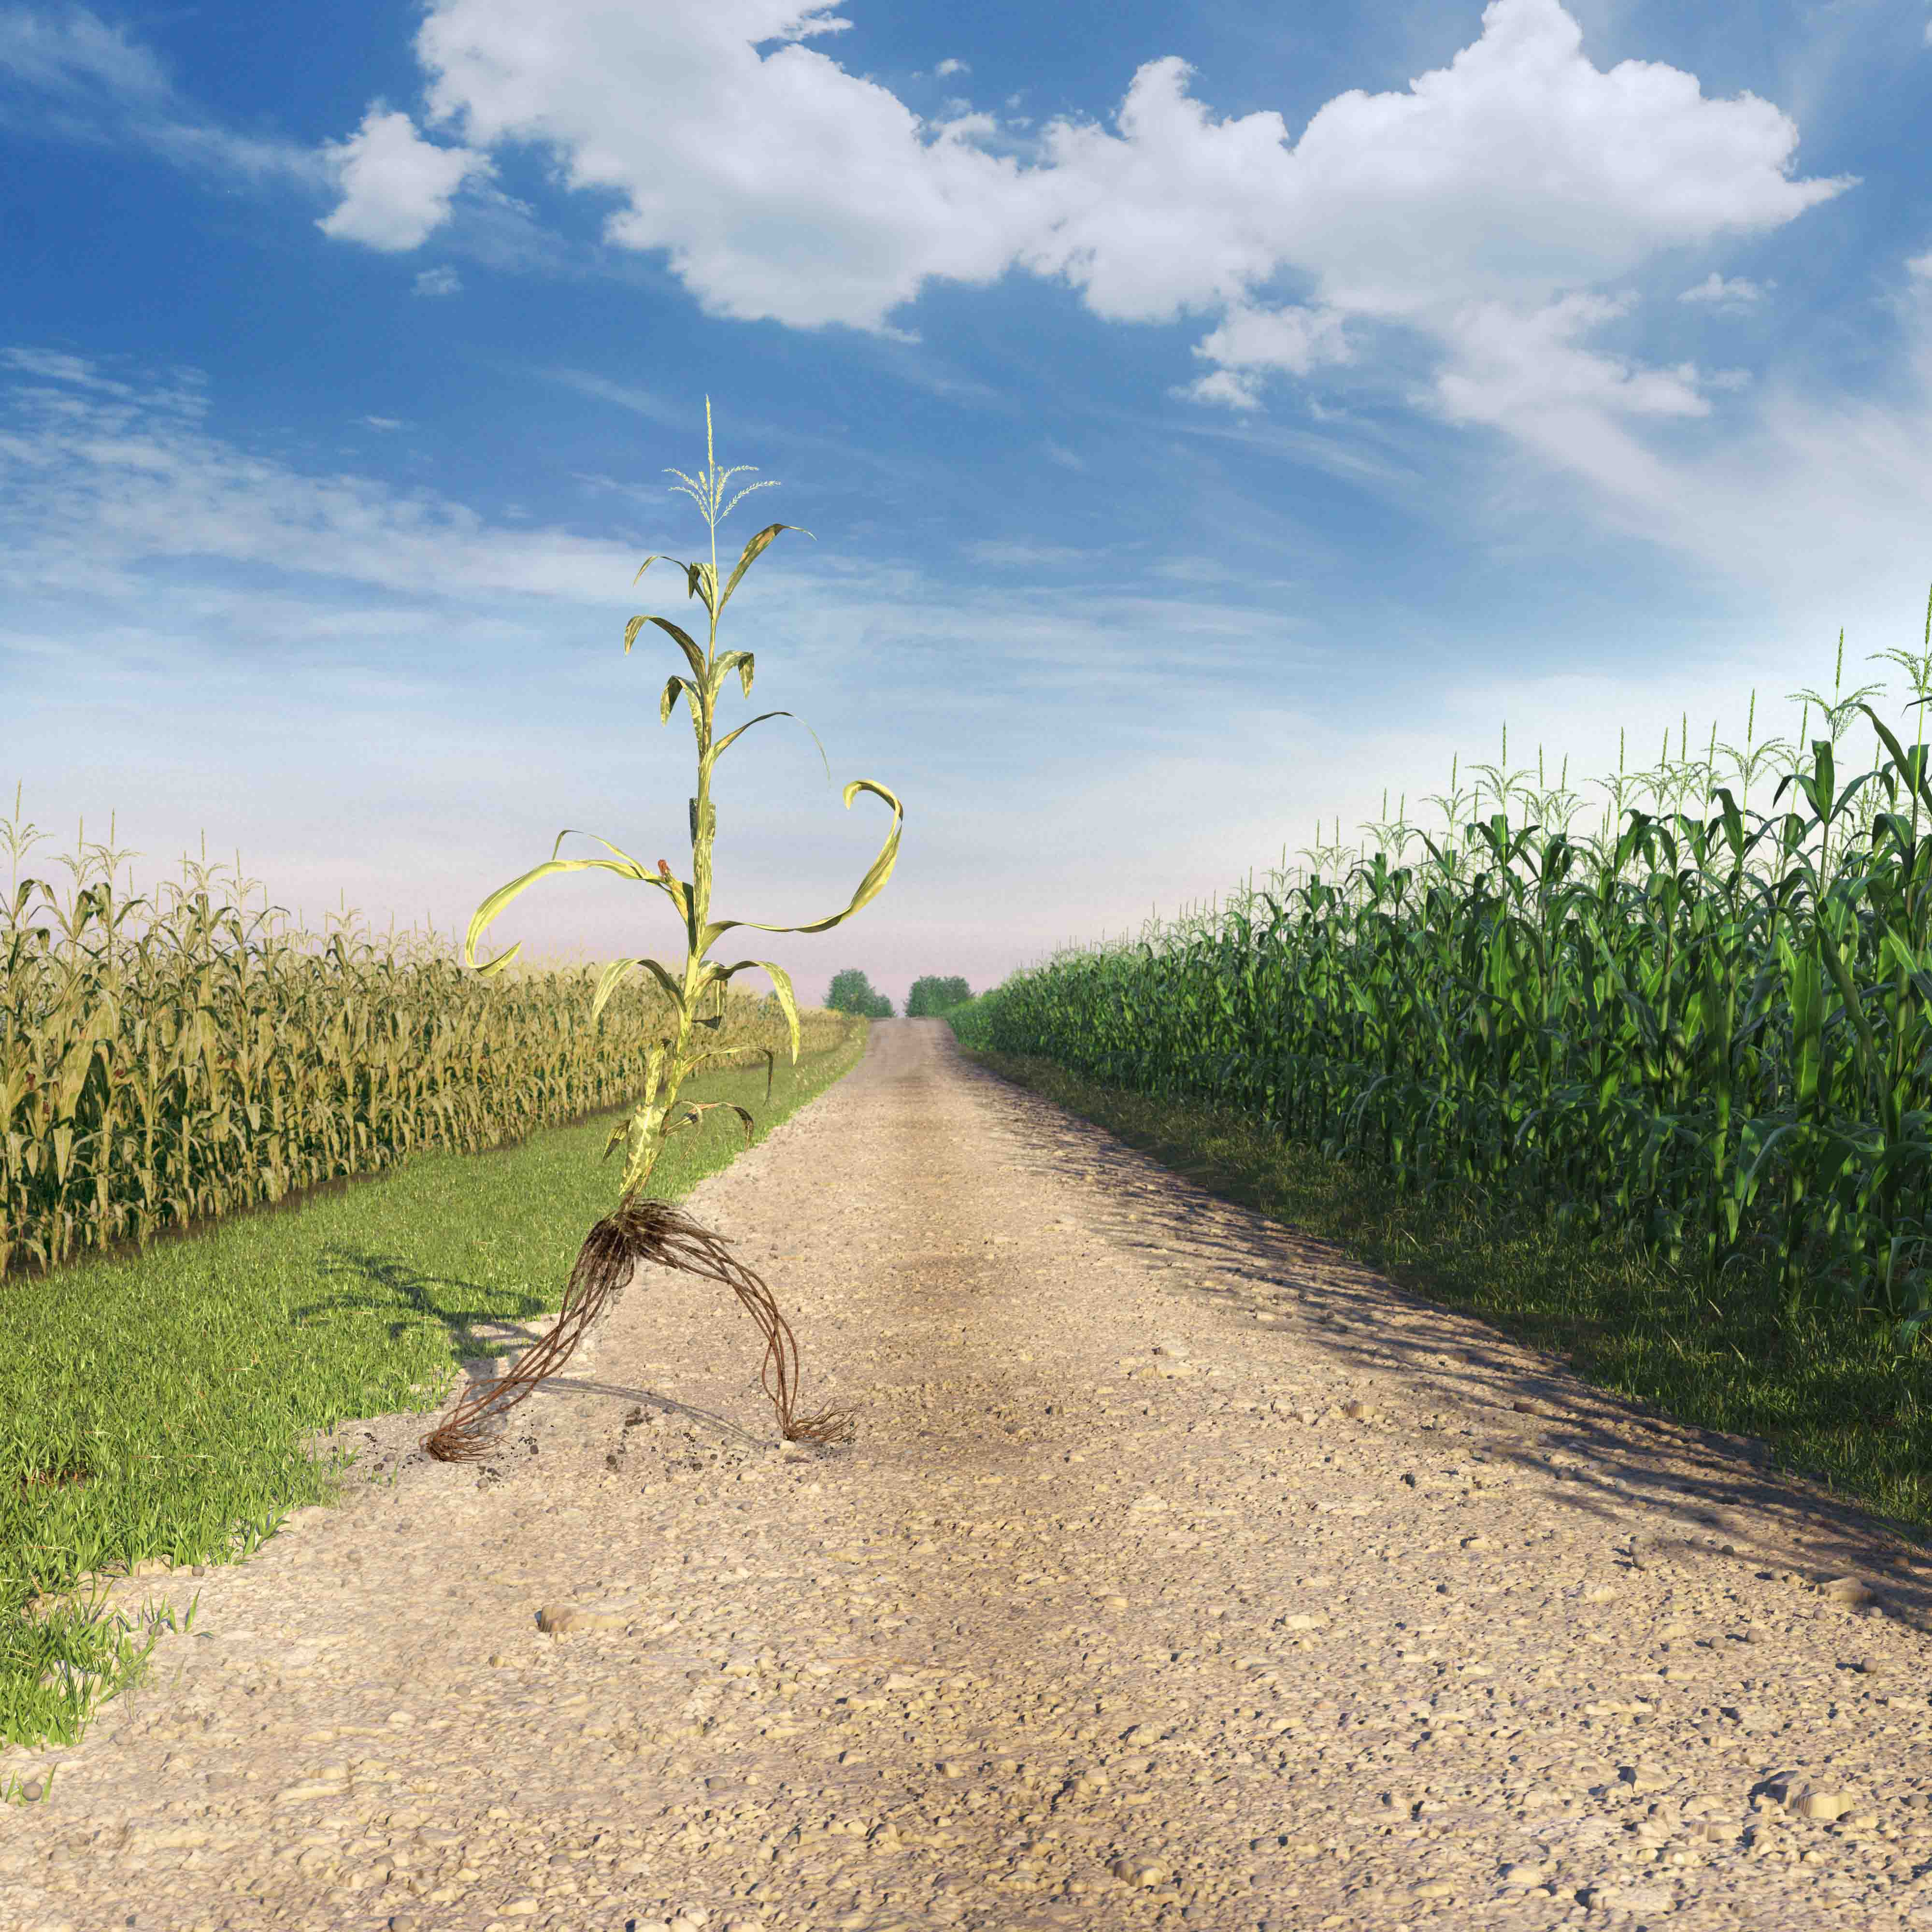 A corn plant walking from a diseased field to a healthy field magazine ad